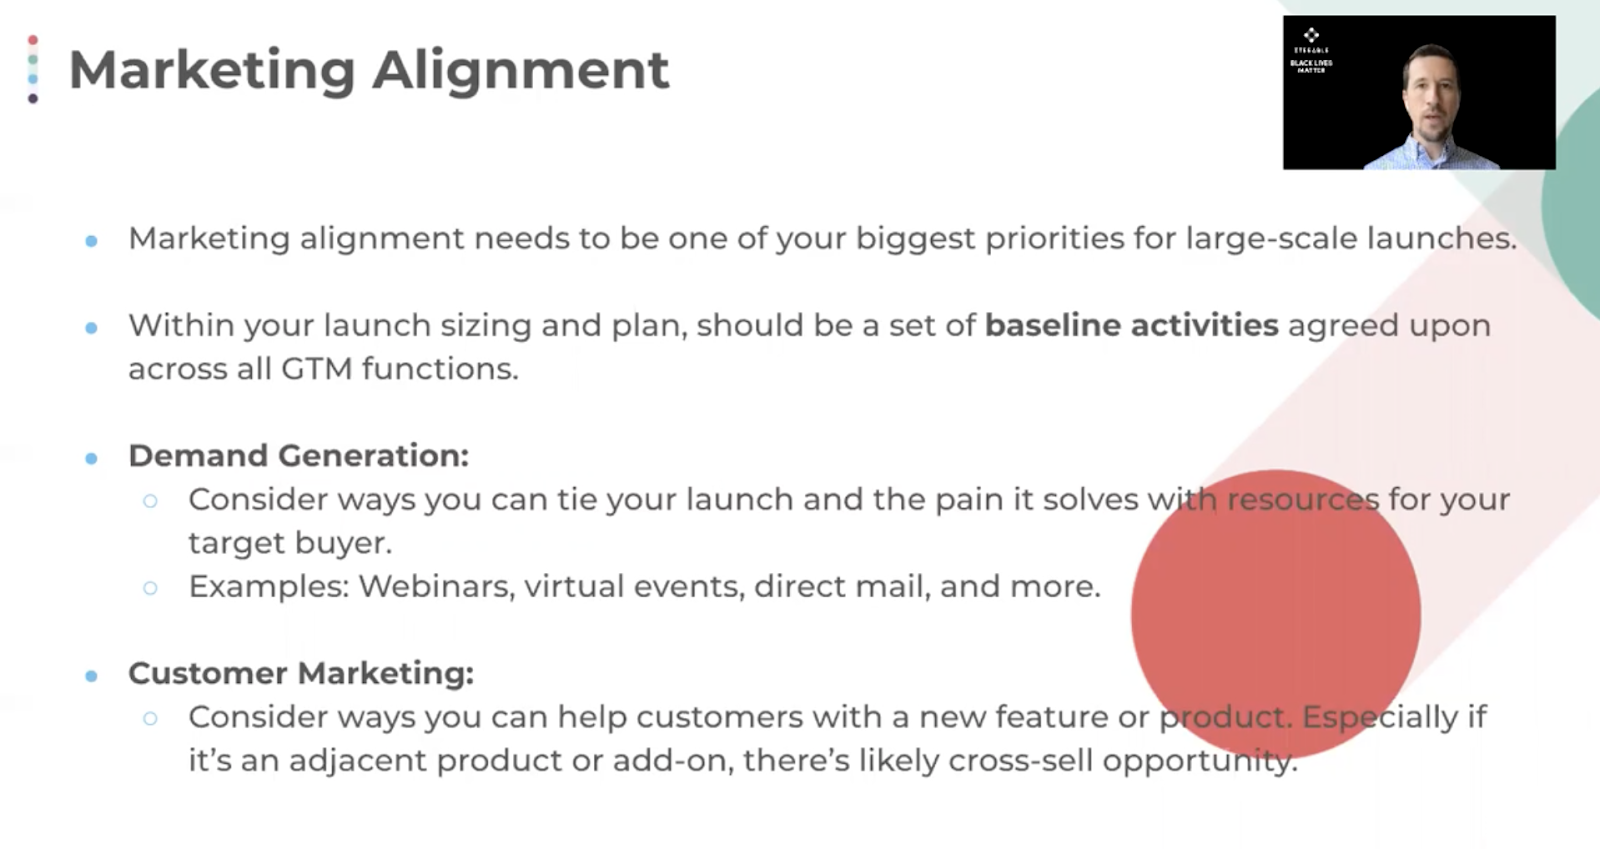 Align your marketing during a large-scale launch.